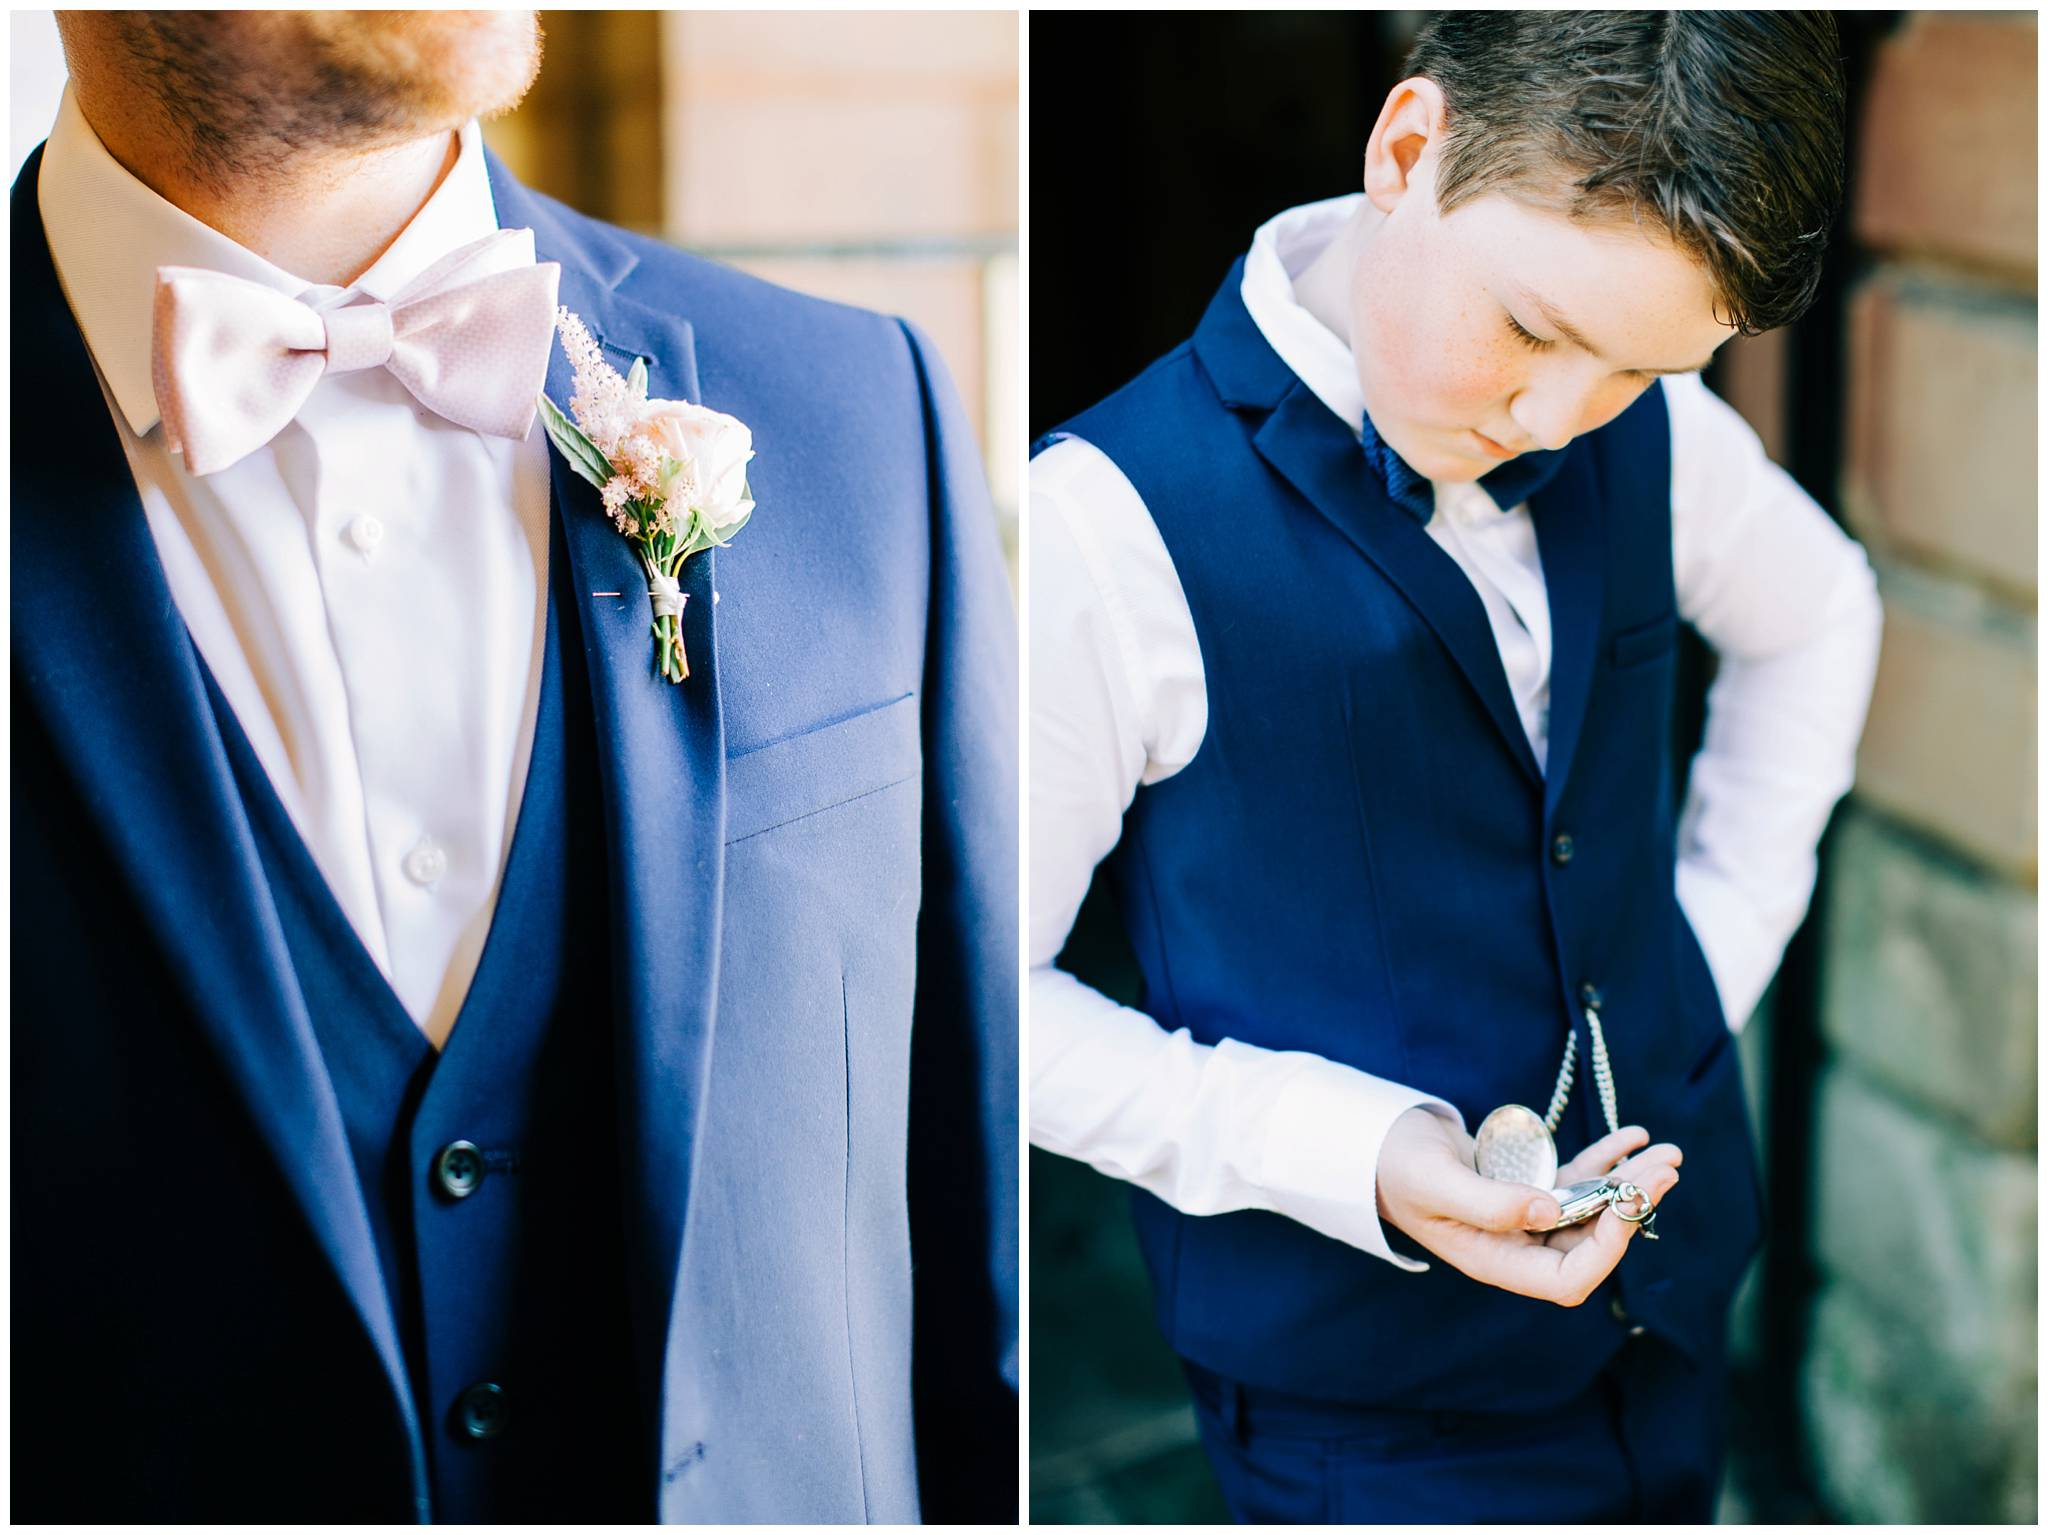 a close up of grooms pink floral button hole, and a young guest looking at his watch